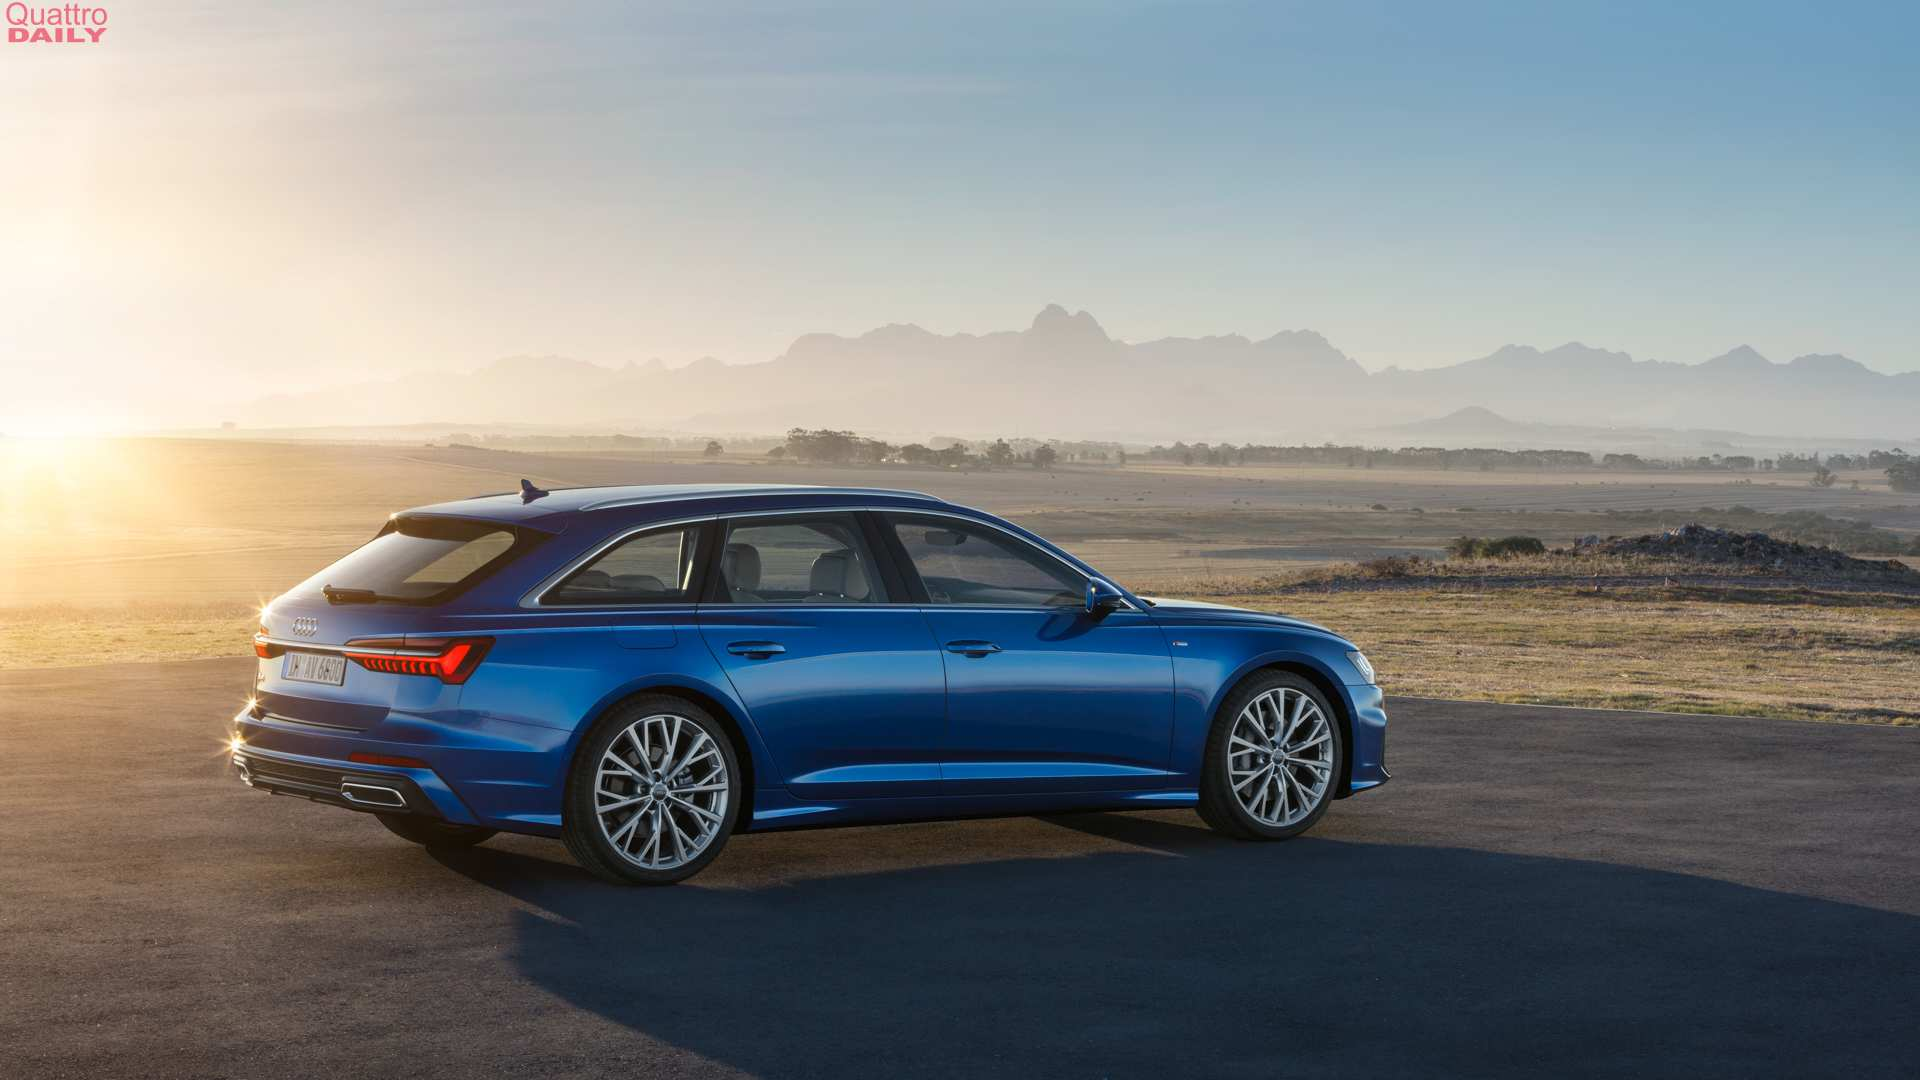 31 New Audi A6 2020 First Drive with Audi A6 2020